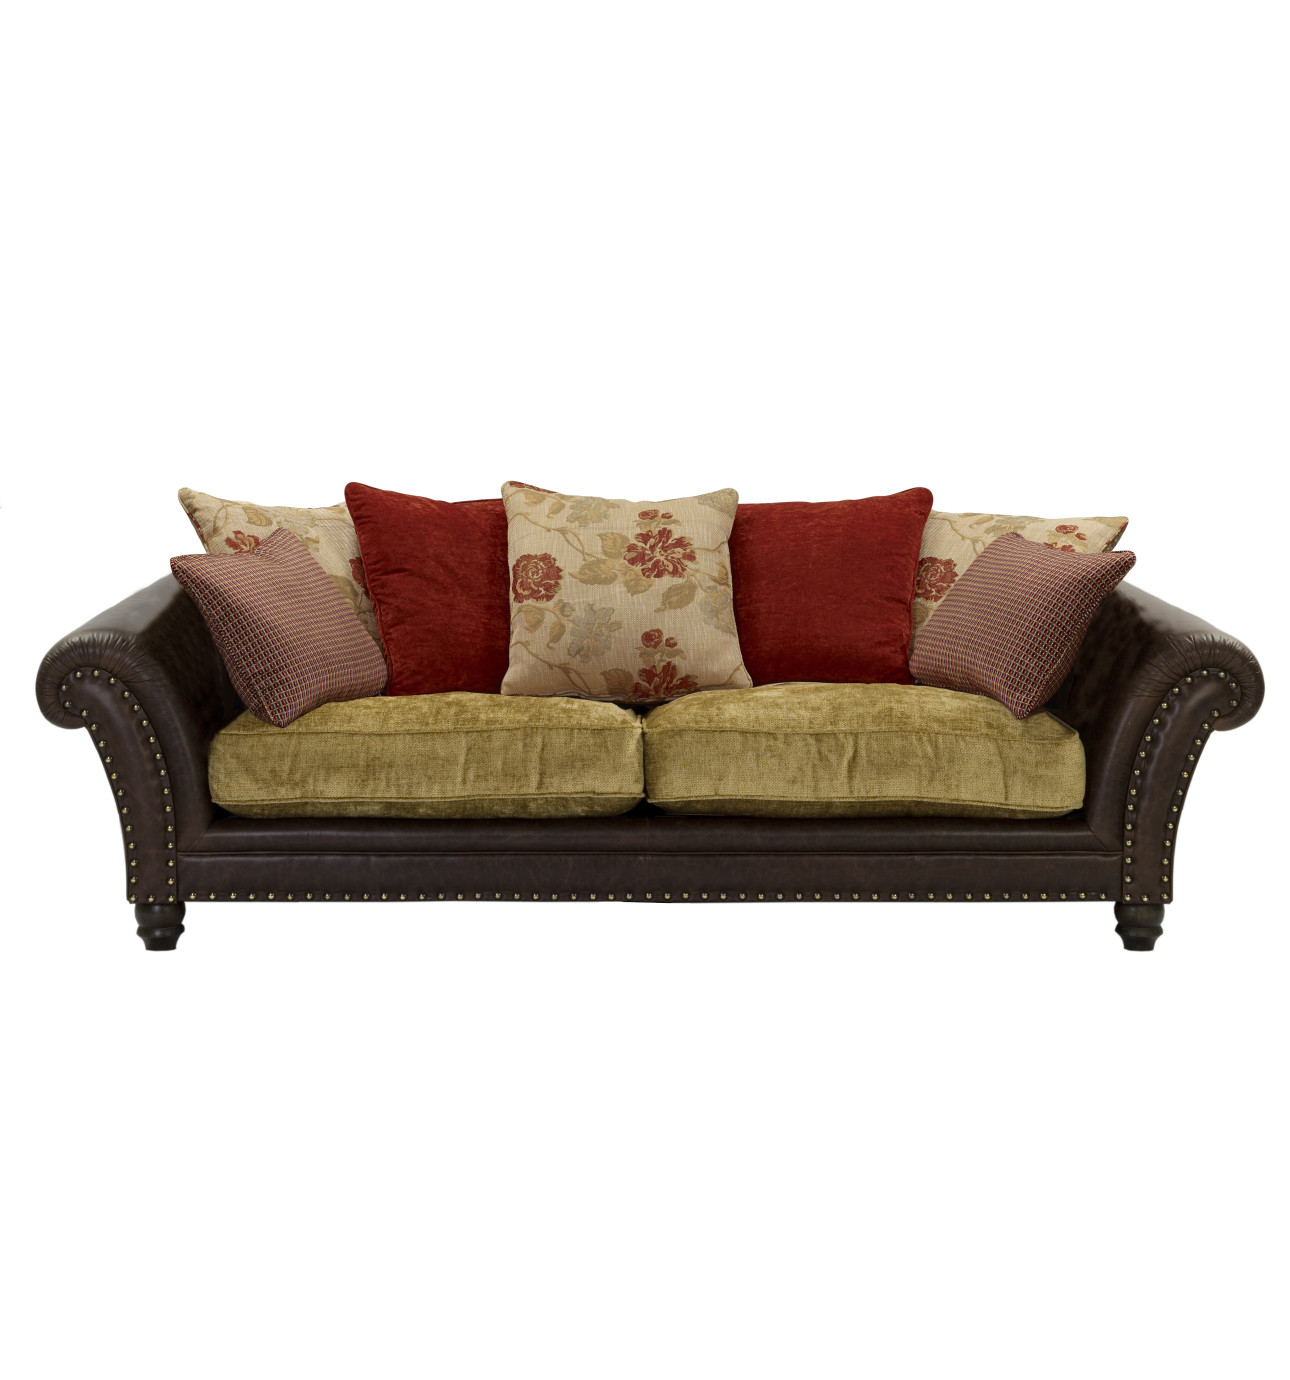 Sofas australia online good sofa beds australia online 95 for Sofa bed australia